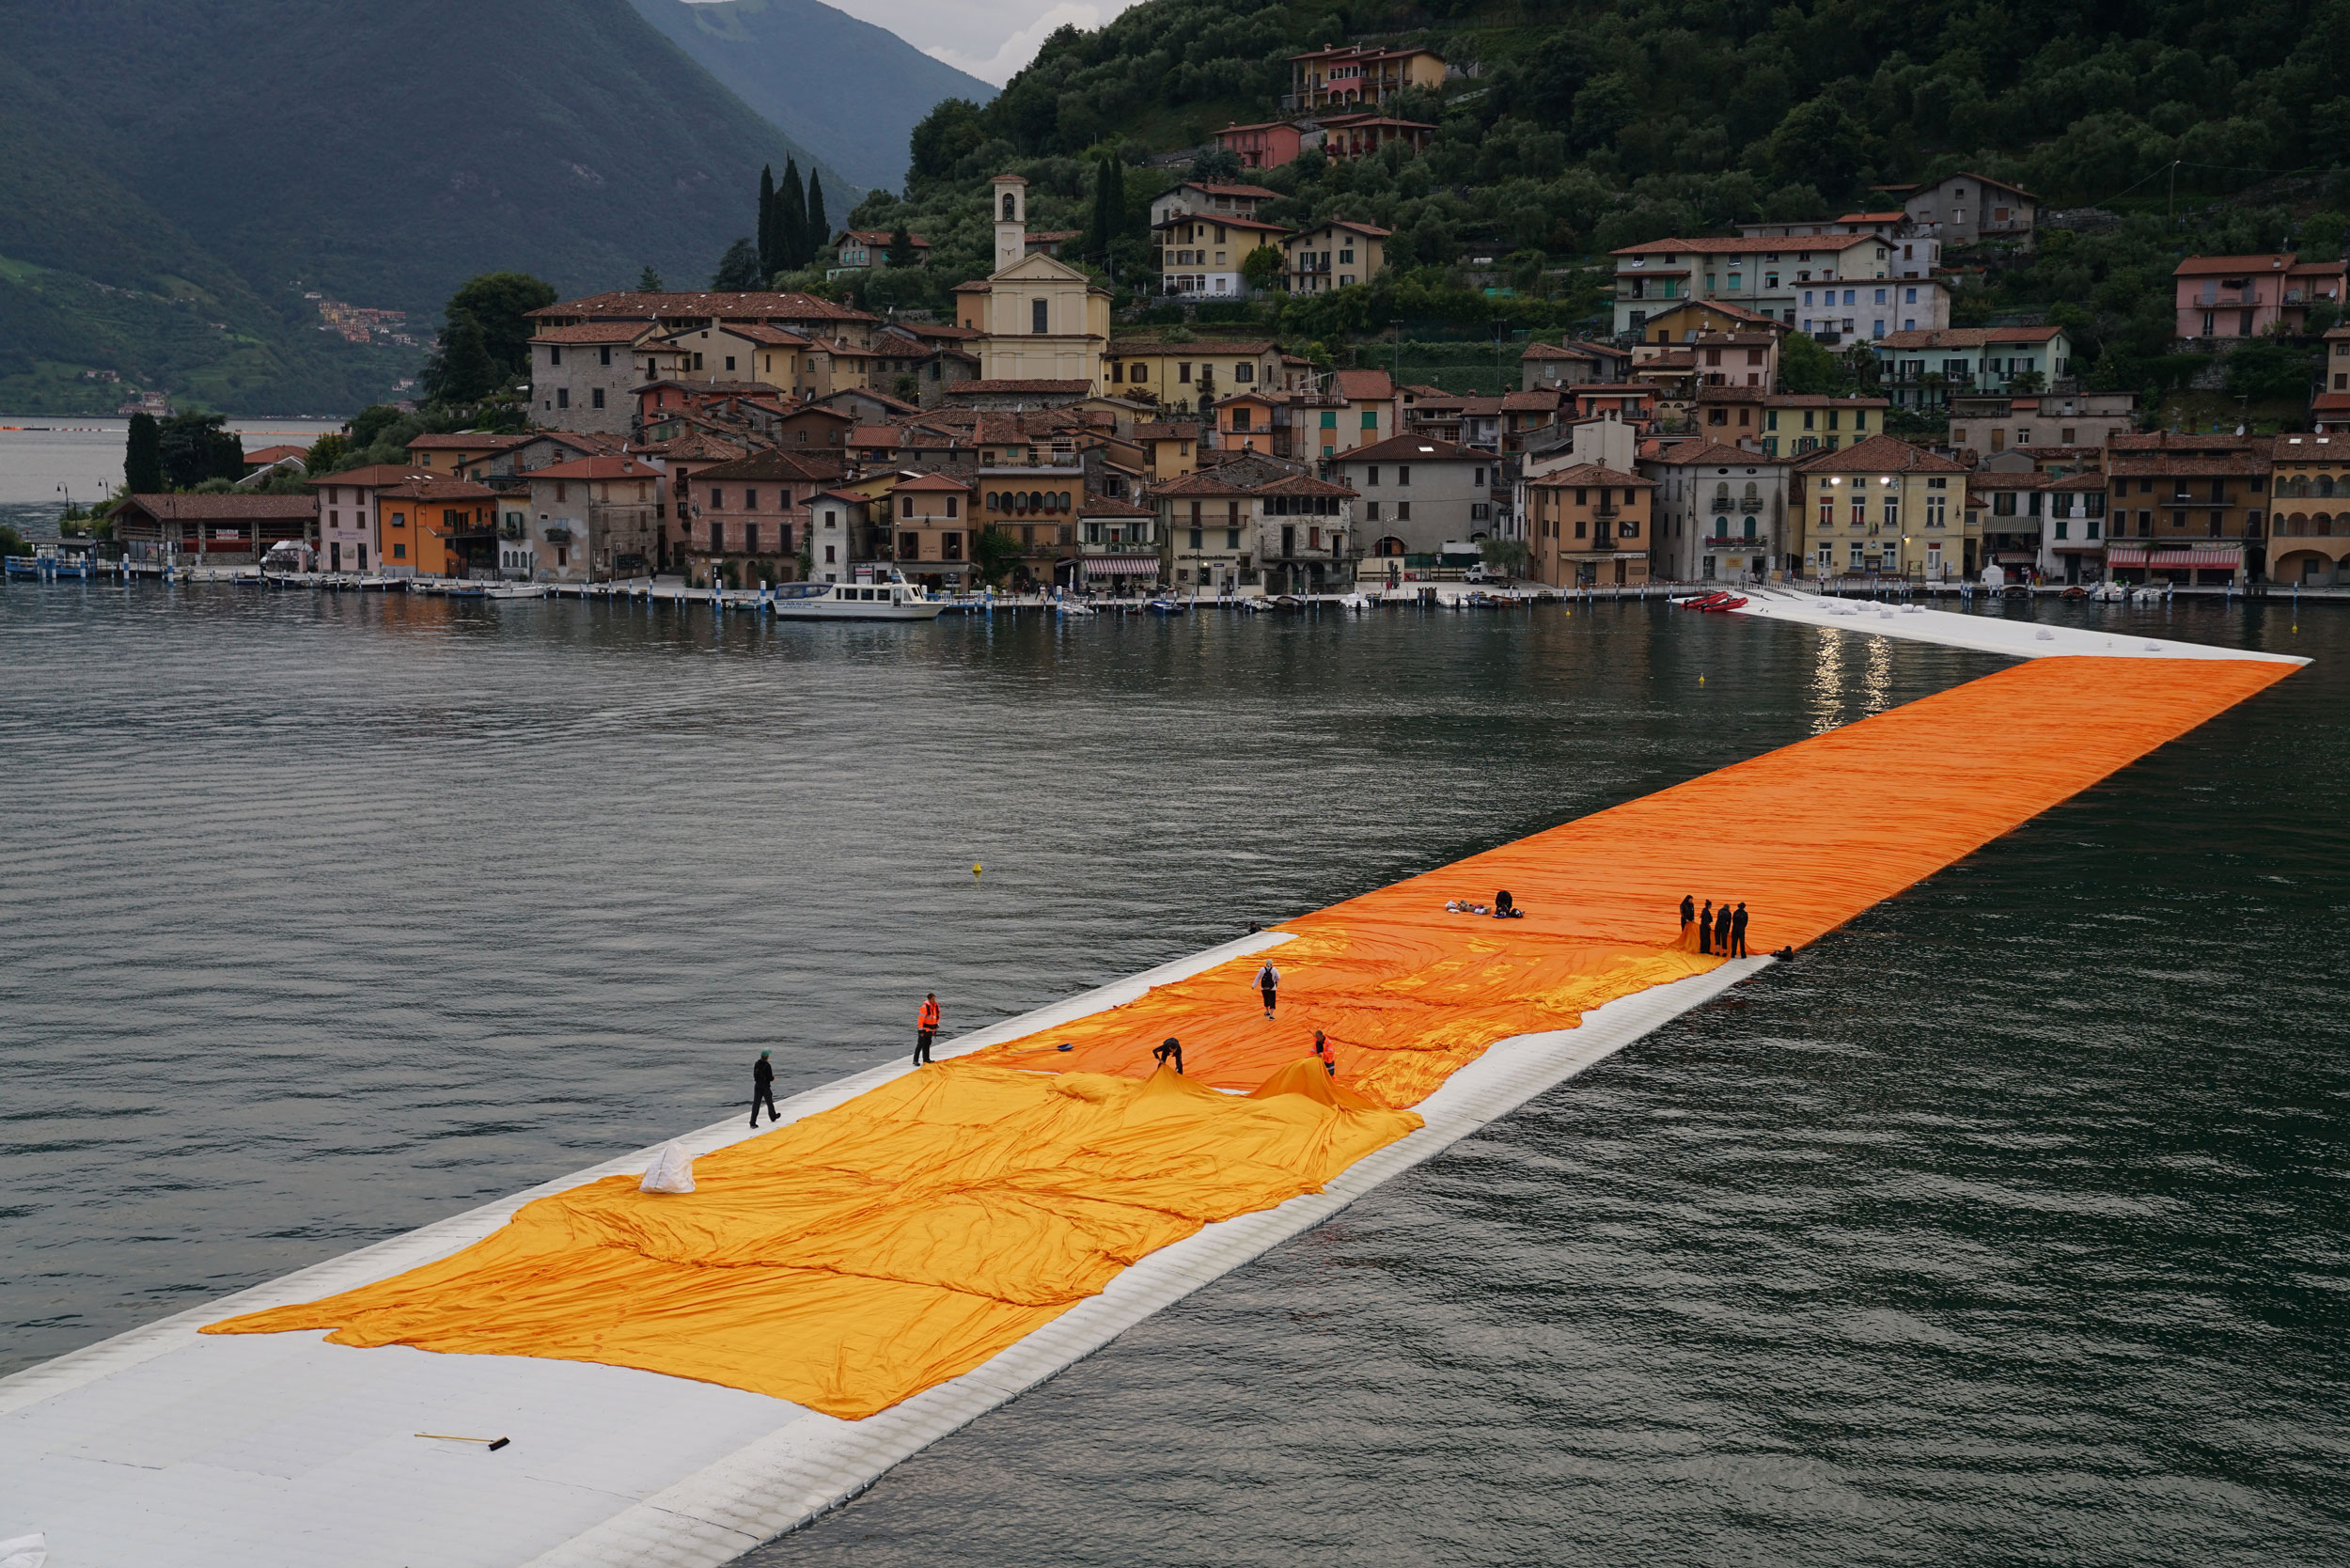 From the evening of June 15 to the evening of June 17, teams unfurl 100,000 square meters of shimmering dahlia-yellow fabric on the piers and pedestrian streets in Sulzano and Peschiera Maraglio Photo: Wolfgang Volz